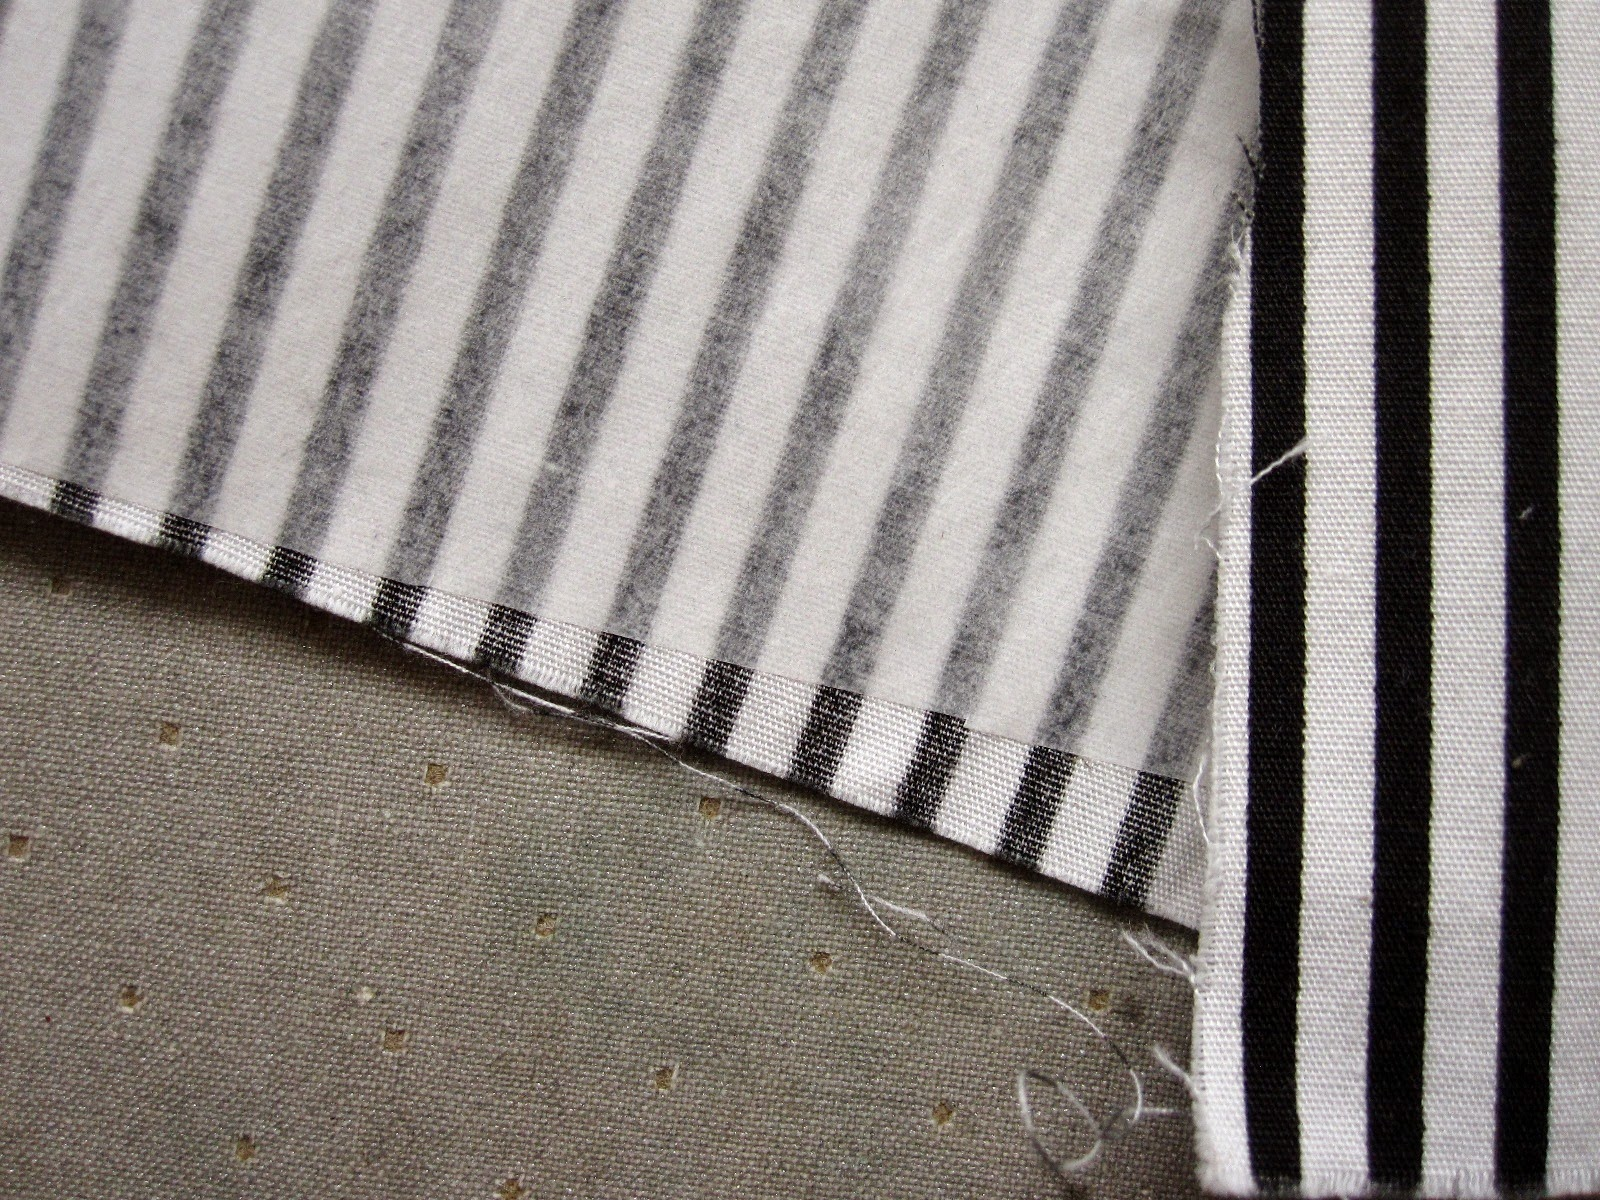 Piece of black and white striped fabric, backed with fusible webbing.